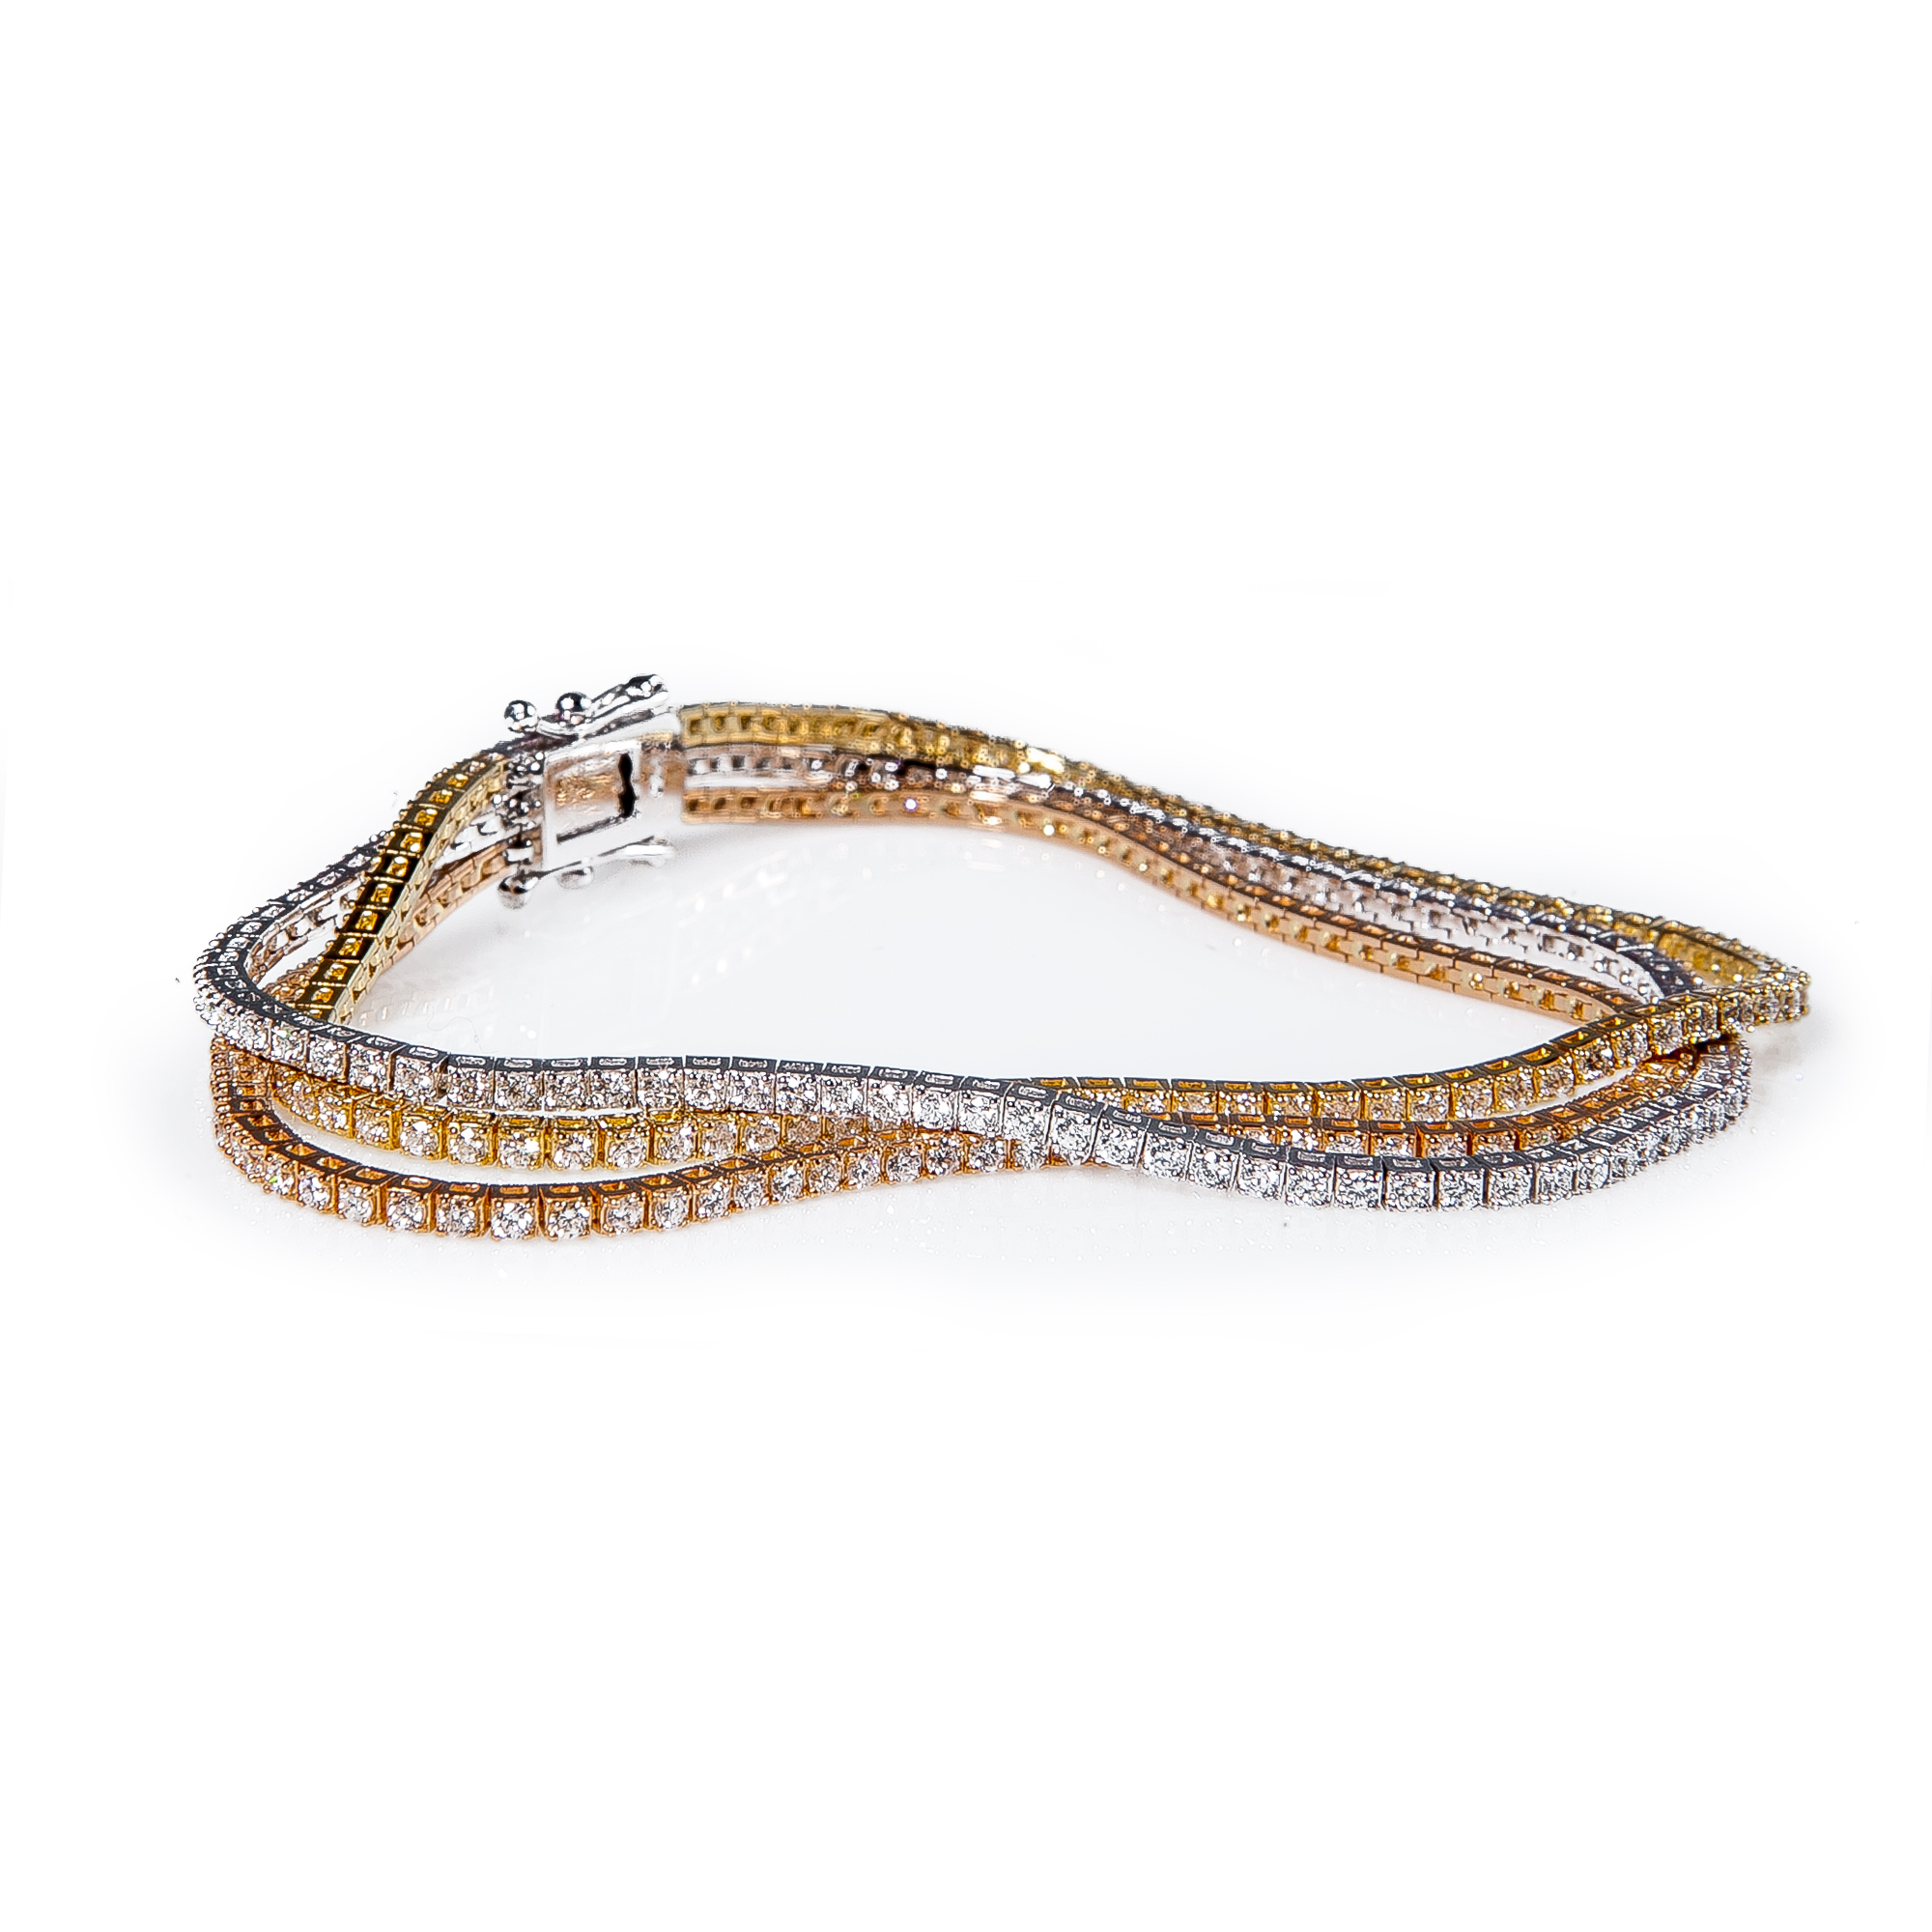 style tone bangles key two bracelet accent bangle diamond pave yellow tennis greek plated gold